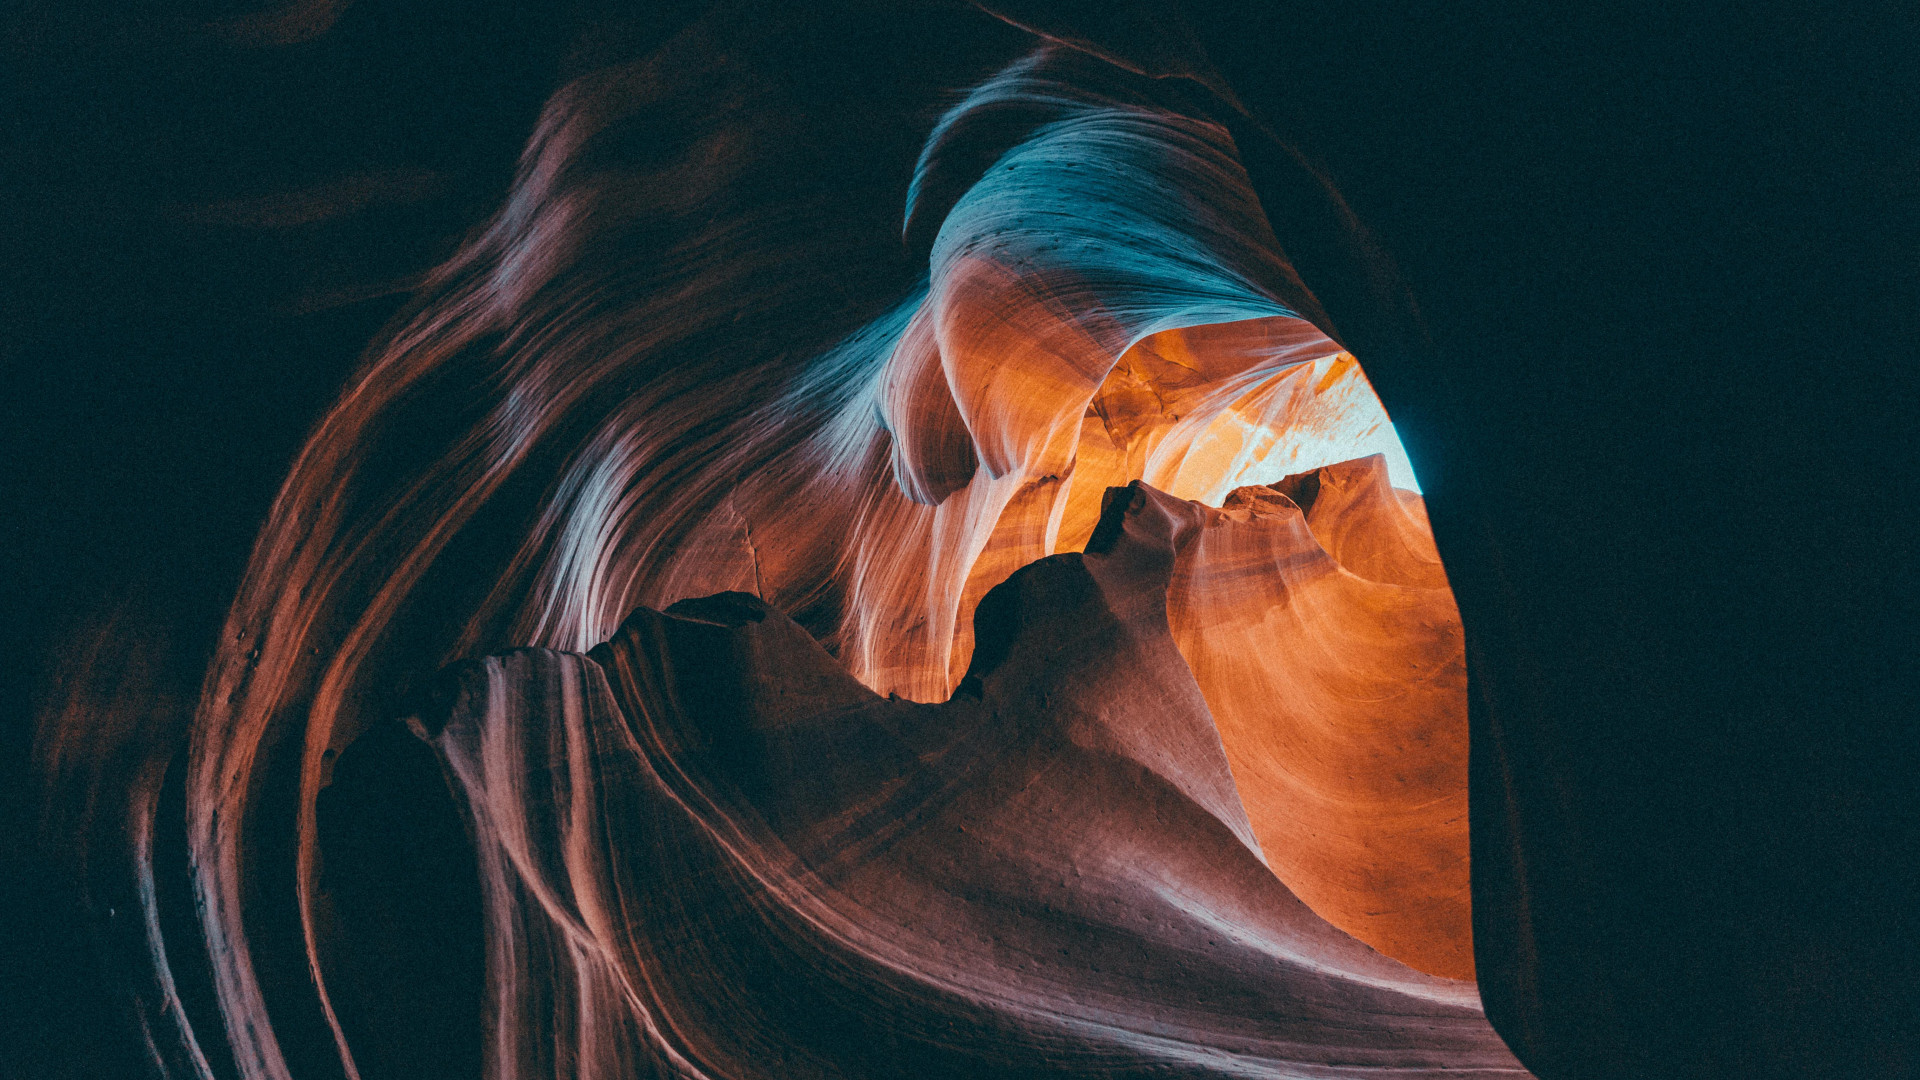 Sandstone curves in a slot canyon in the American southwest